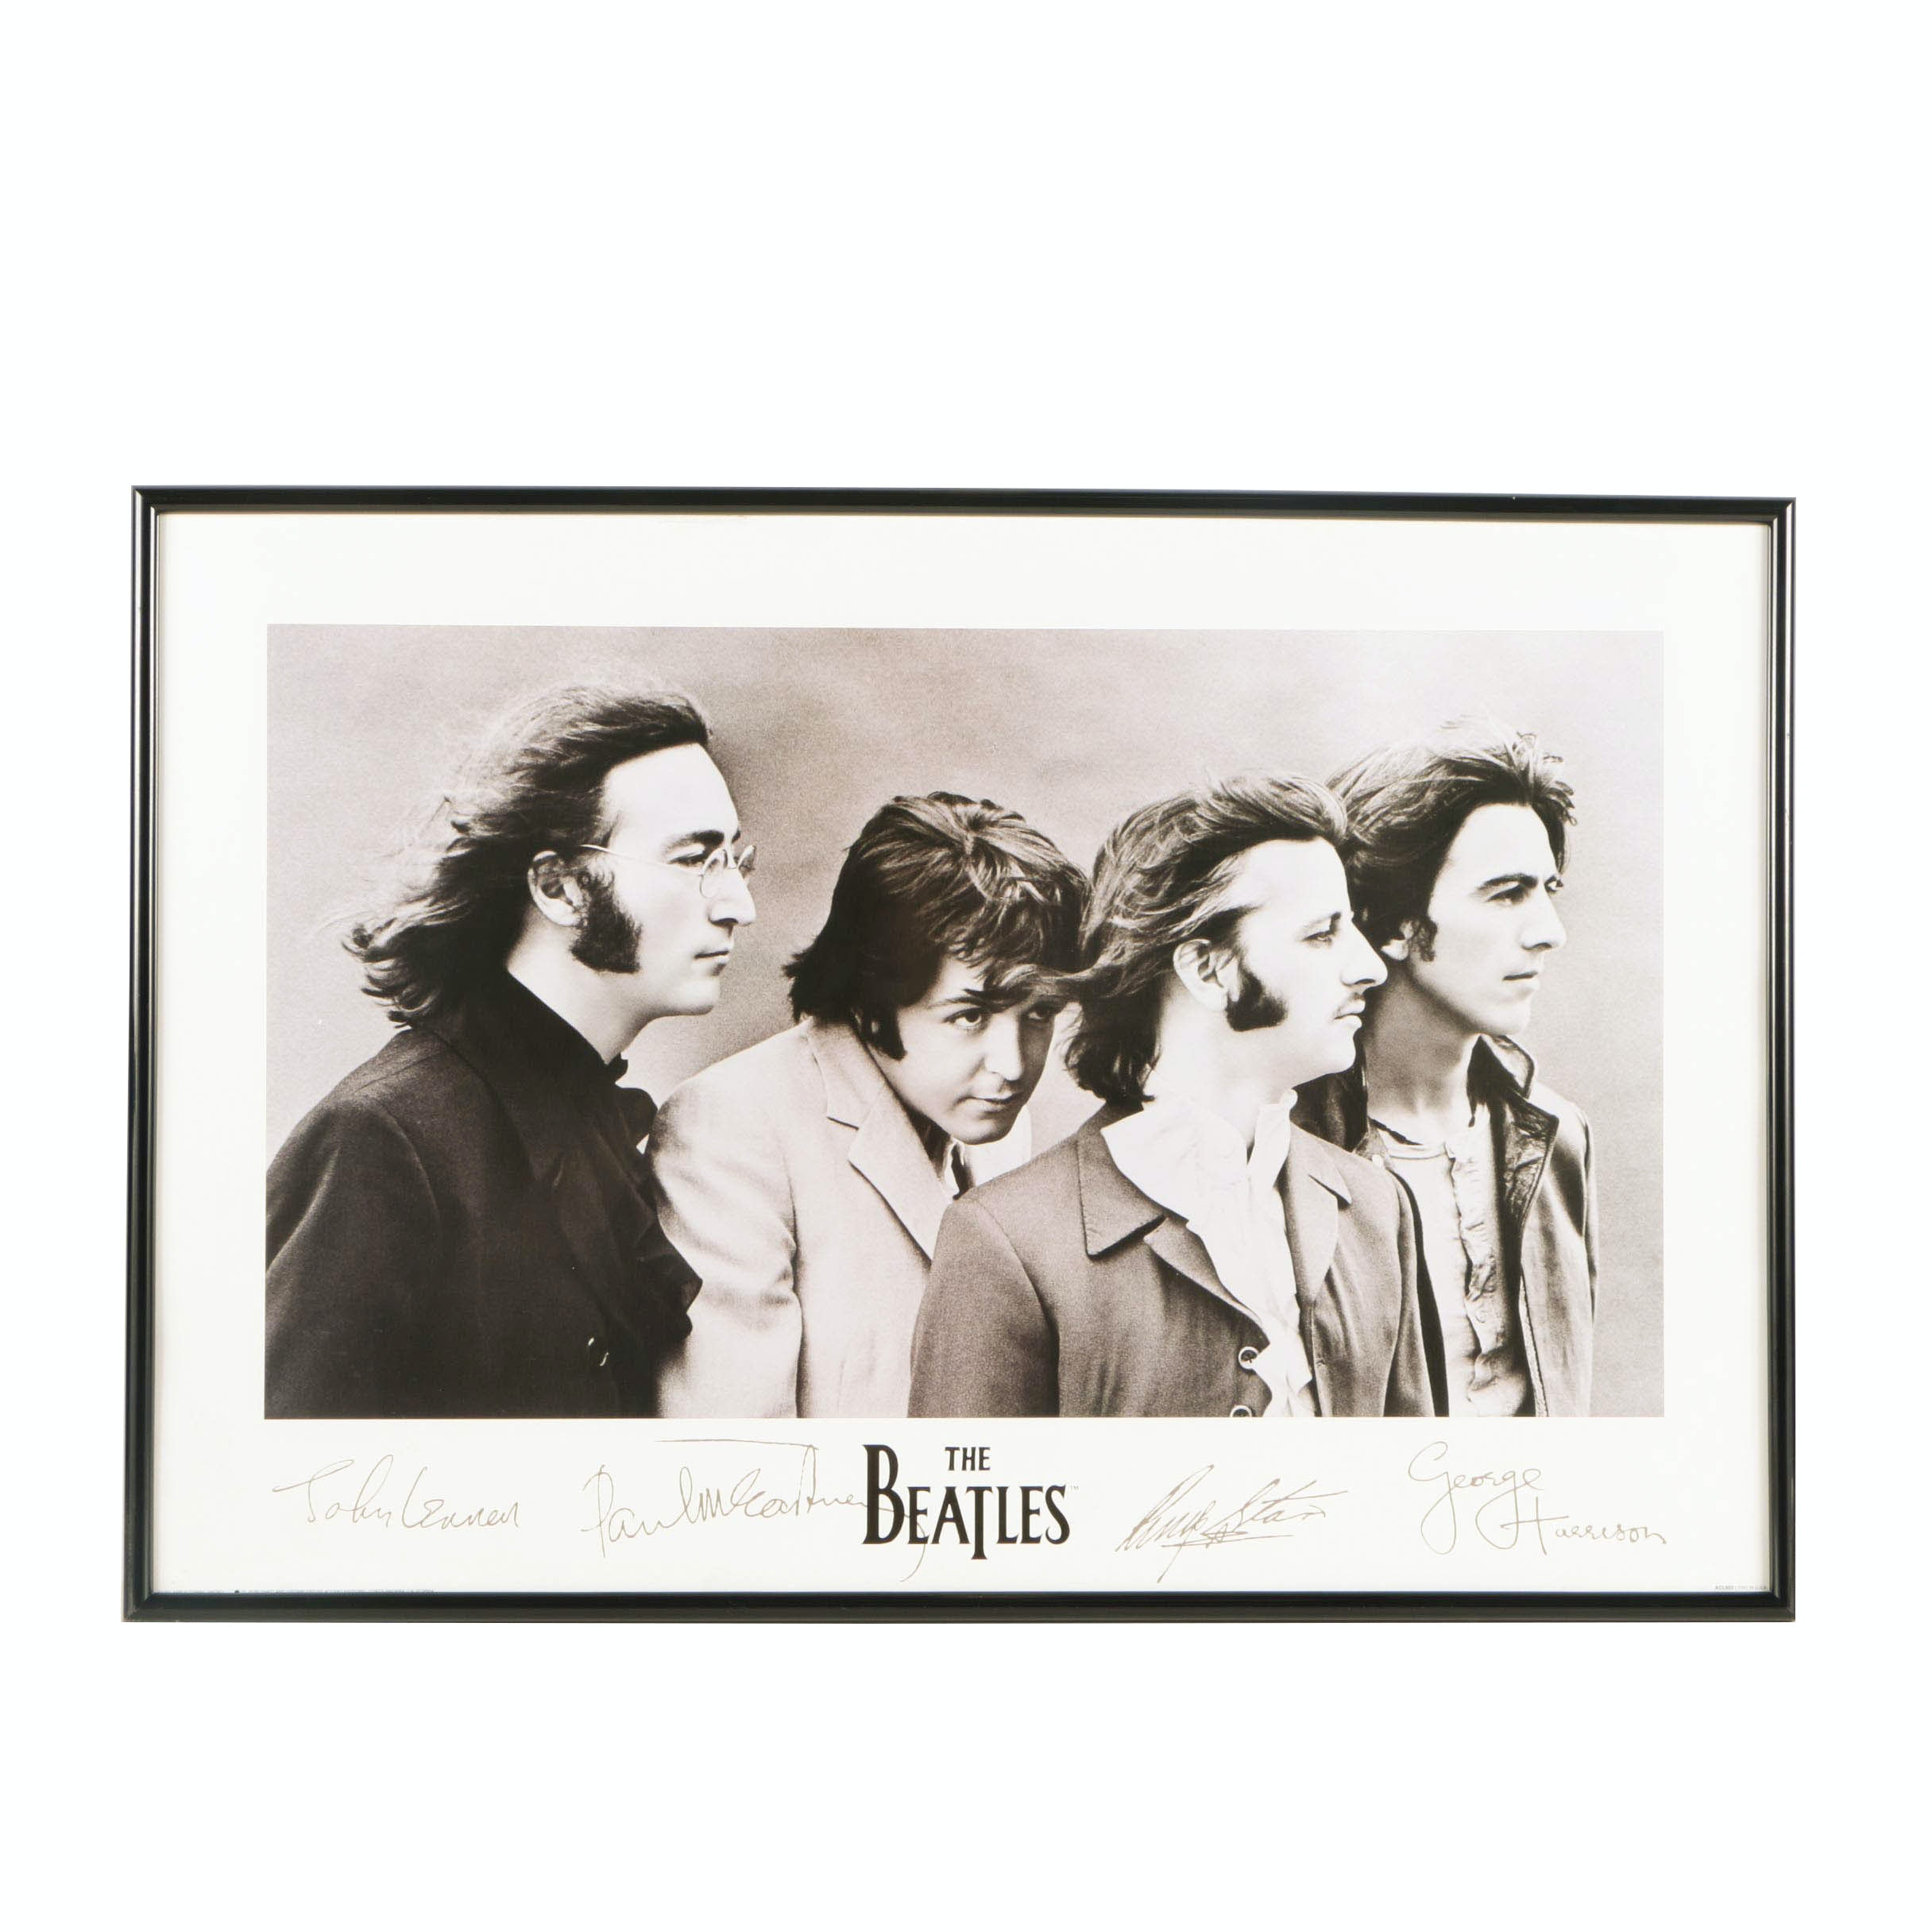 1991 Apple/Accent Editions Beatles Offset Lithograph Poster ACL 603